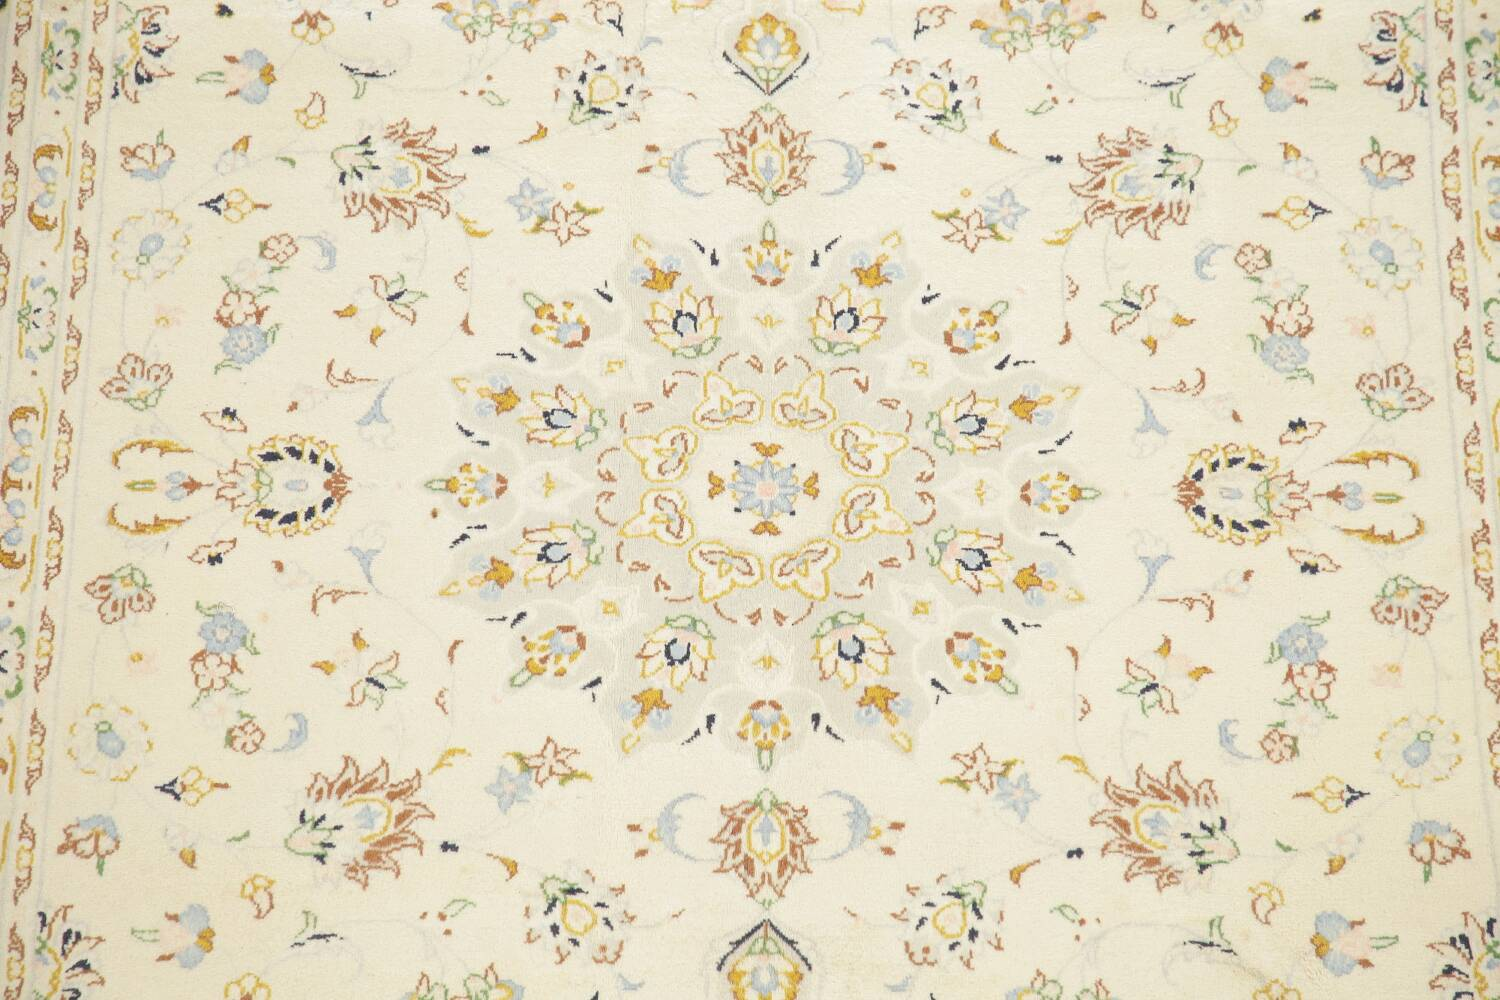 Floral Kashan Persian Area Rug 6x10 image 4